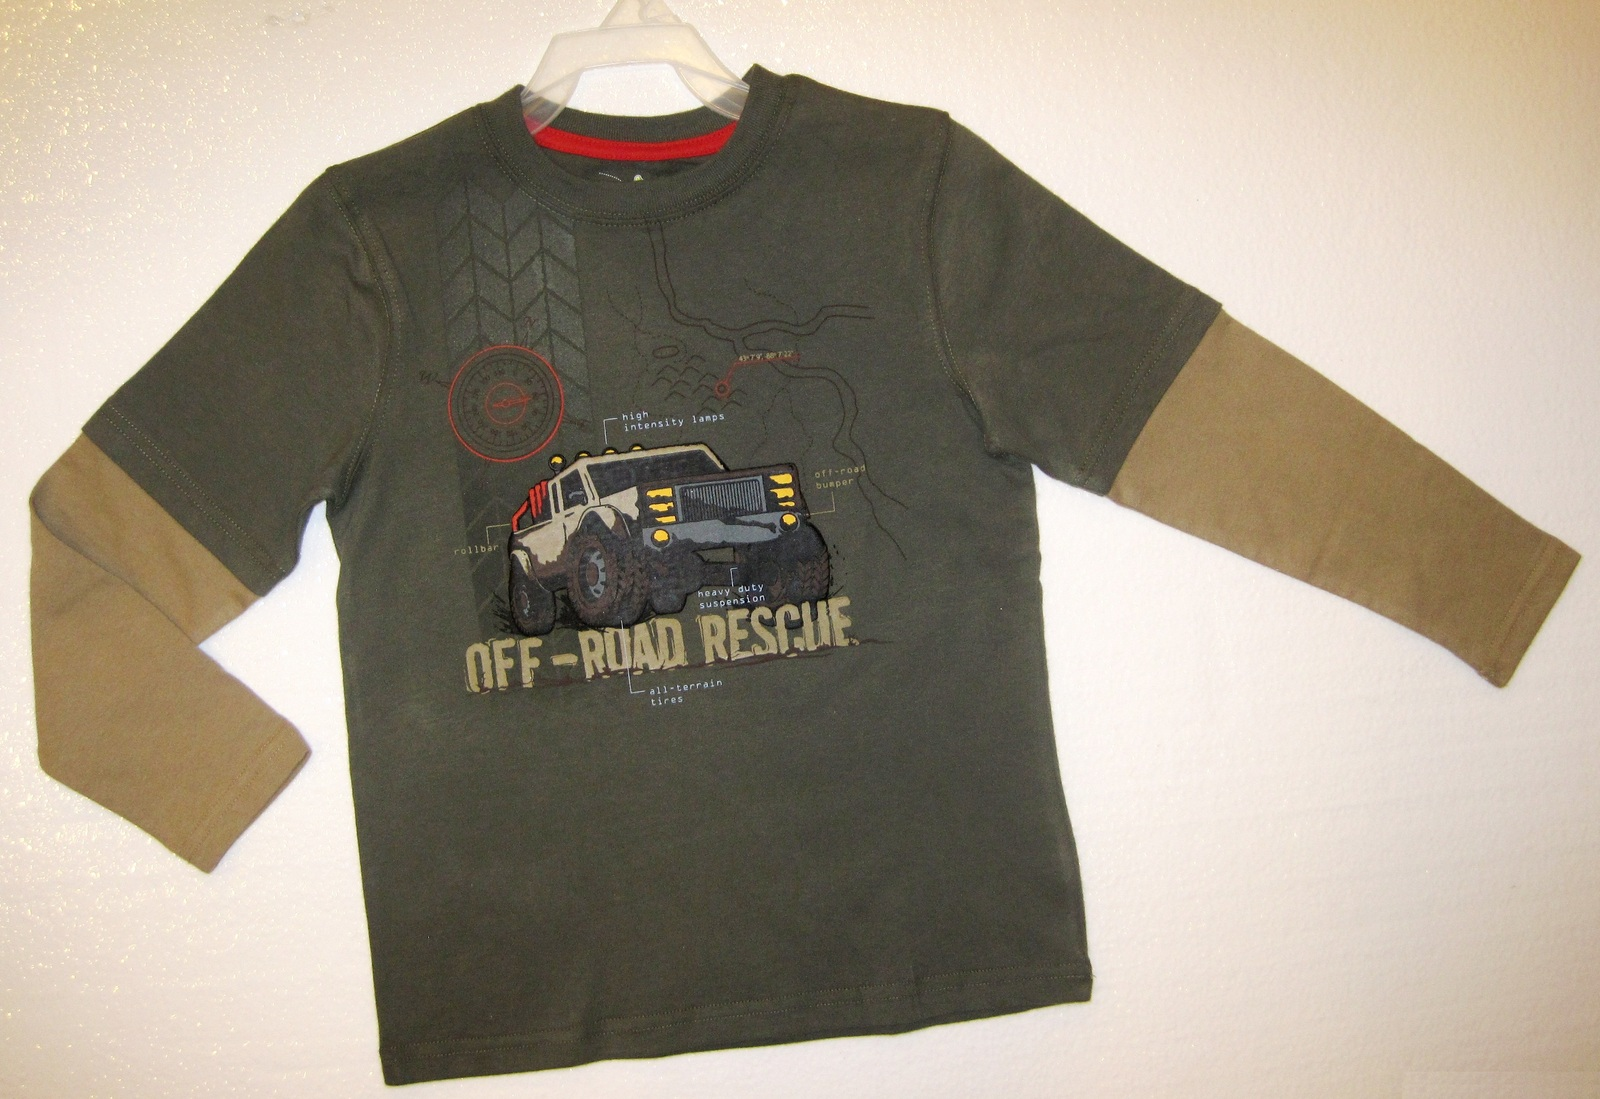 BOYS 7 - Jumping Beans - Off-Road Rescue Layered Look SHIRT